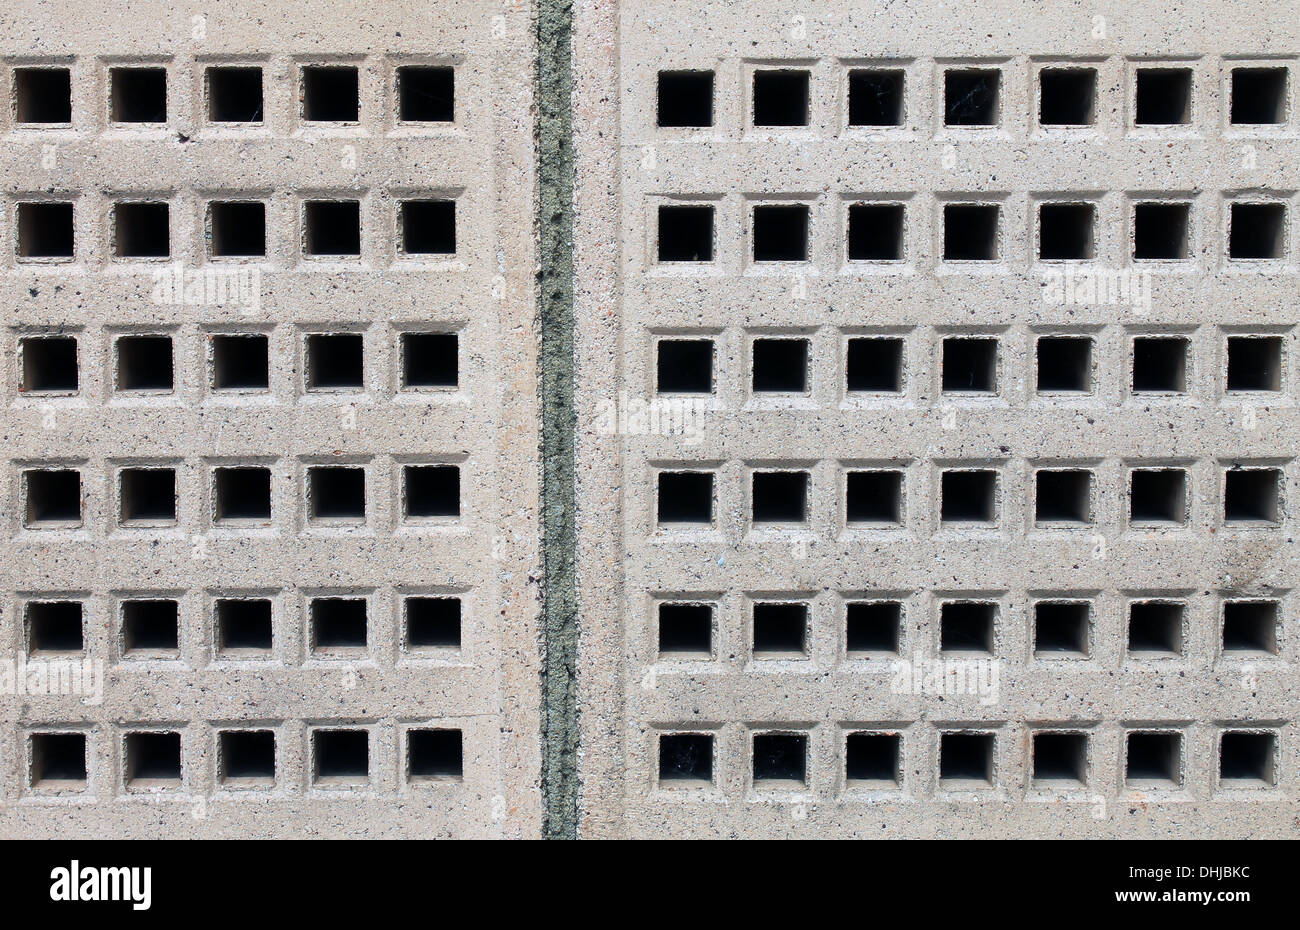 Abstract background of air bricks on exterior of building. - Stock Image